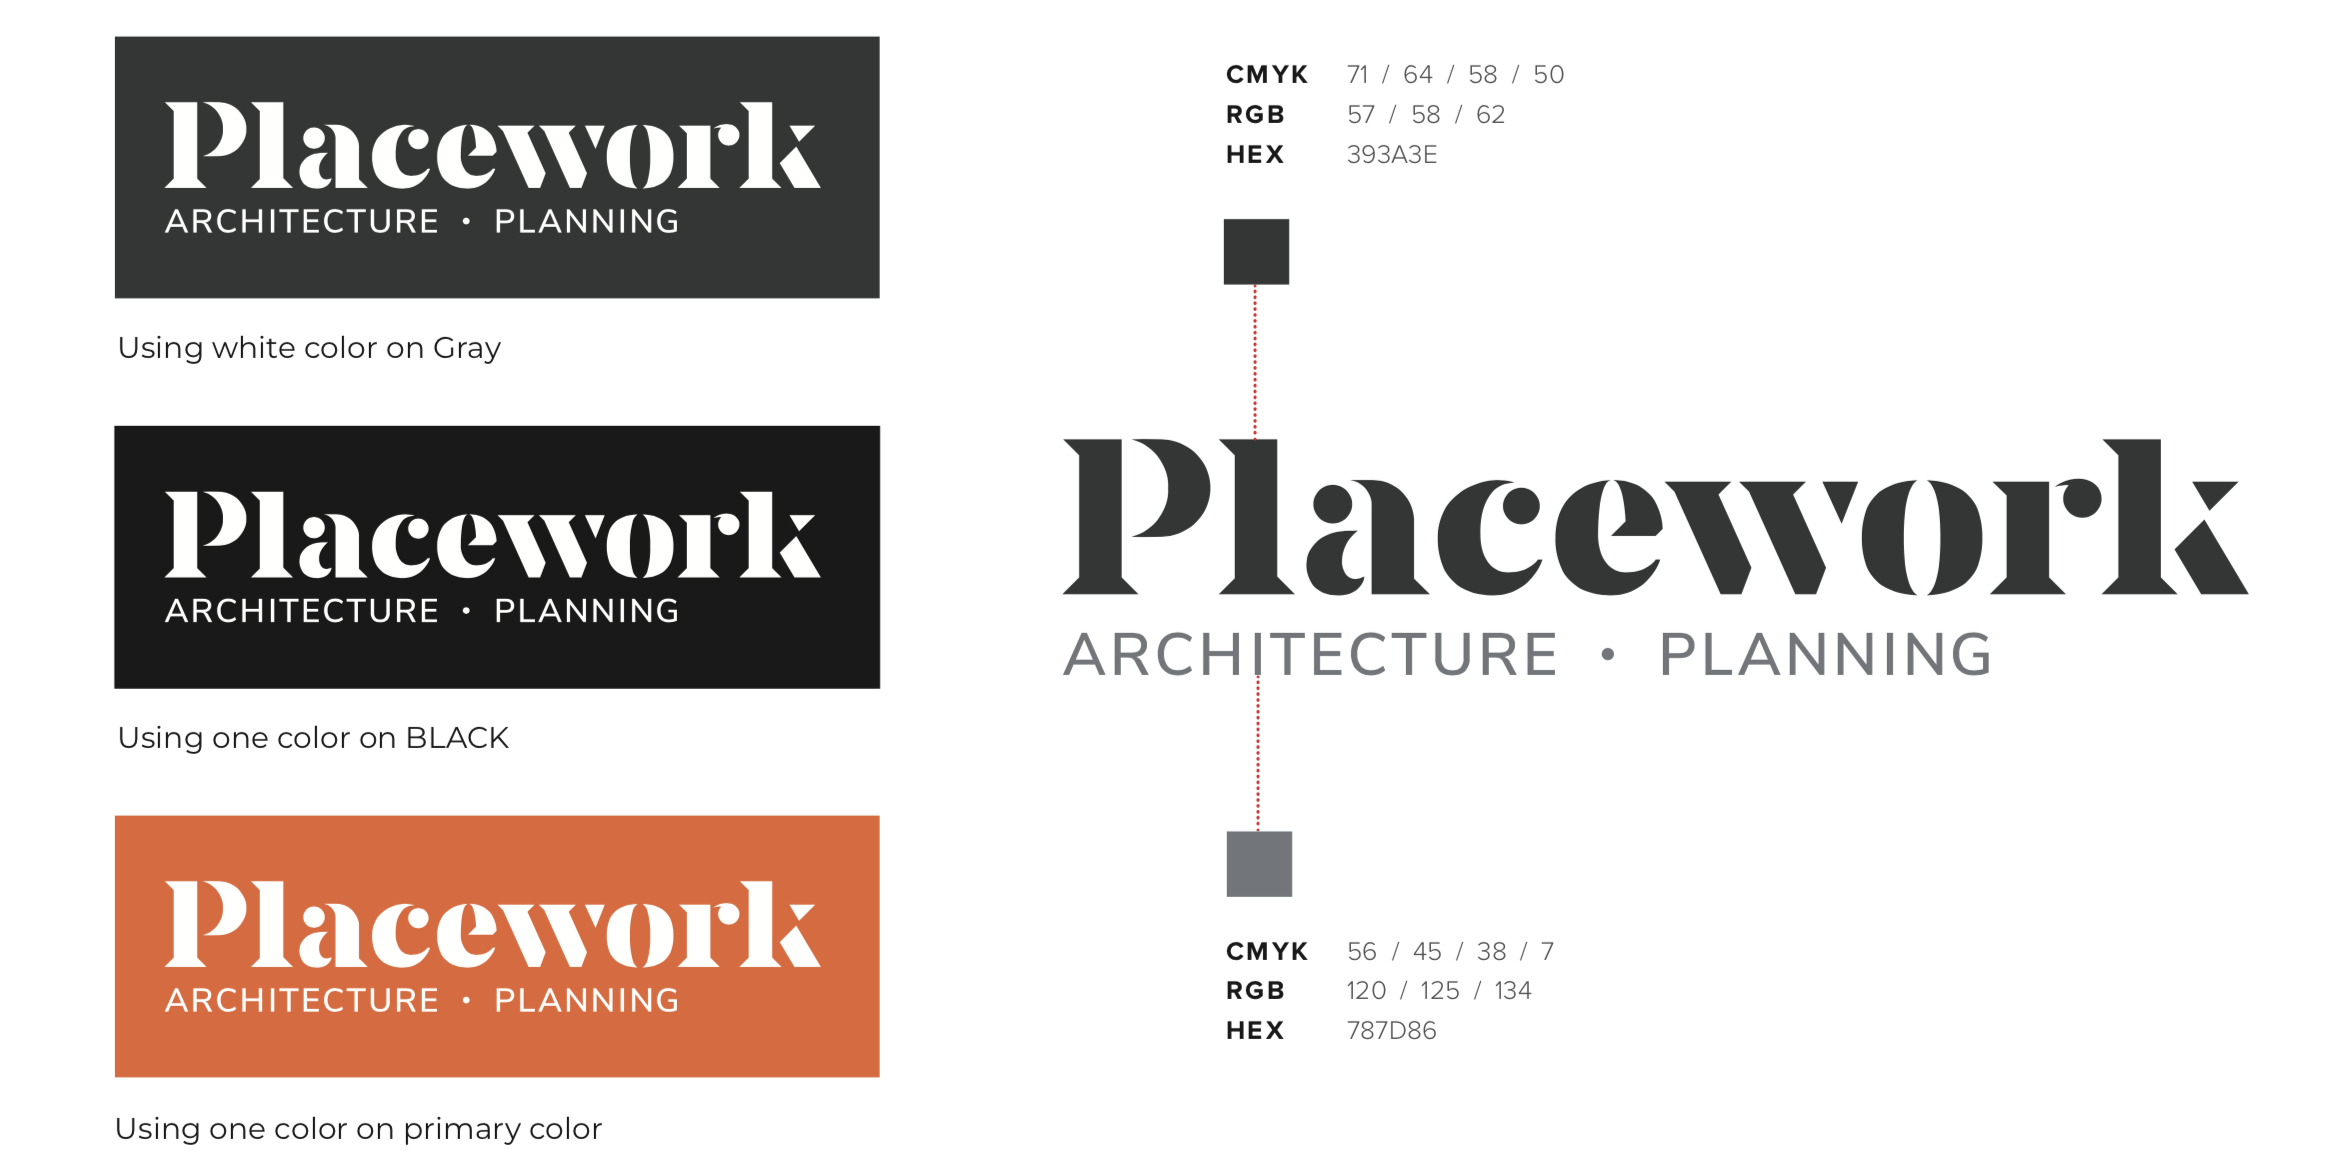 Custom Graphic Design for Architecture Firms